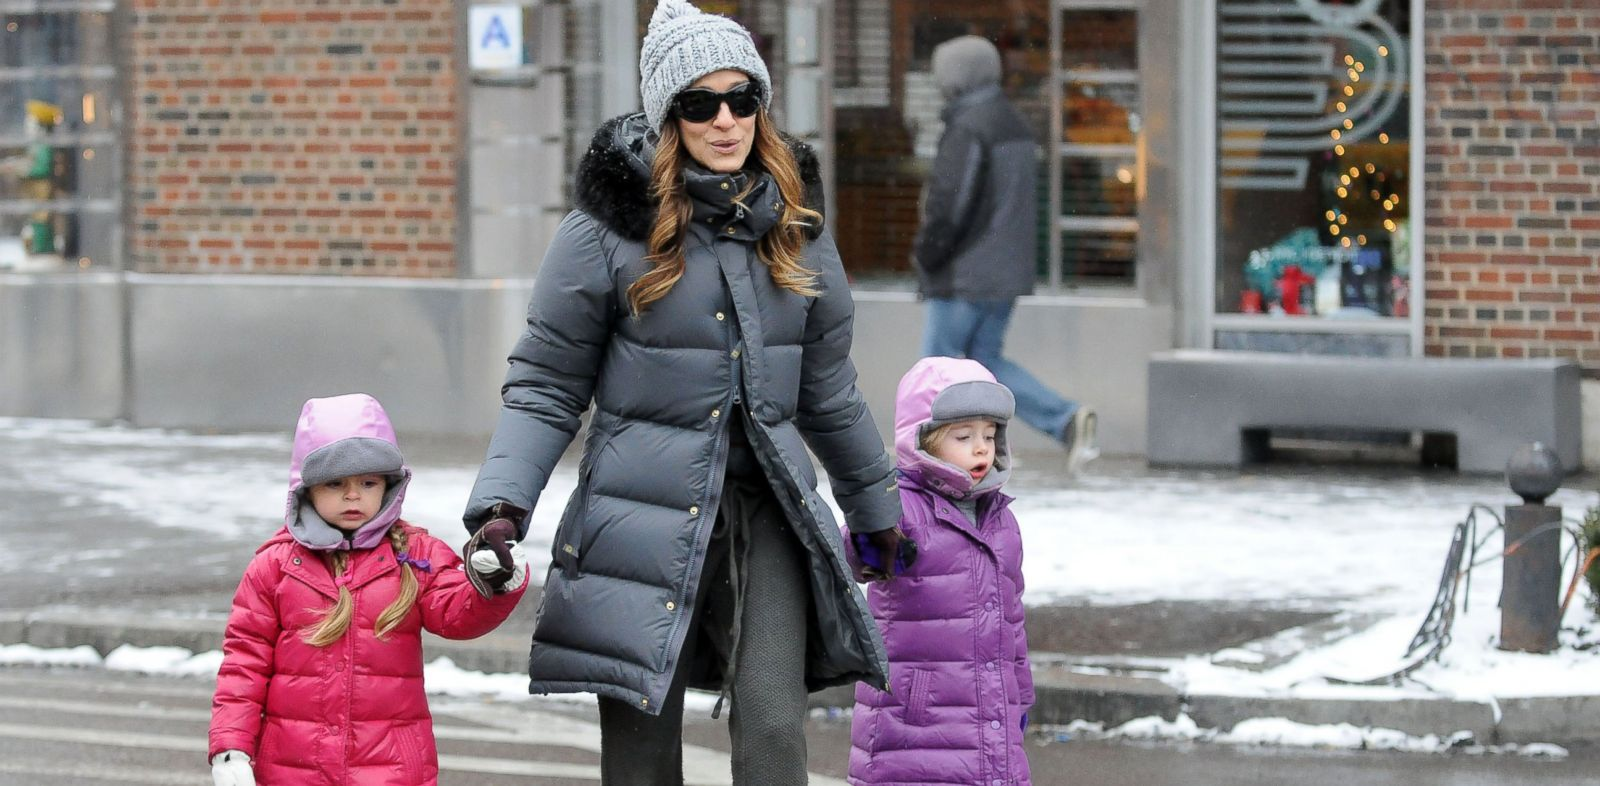 PHOTO: Sarah Jessica Parker walks with her twin daughters Tabitha and Loretta Broderick